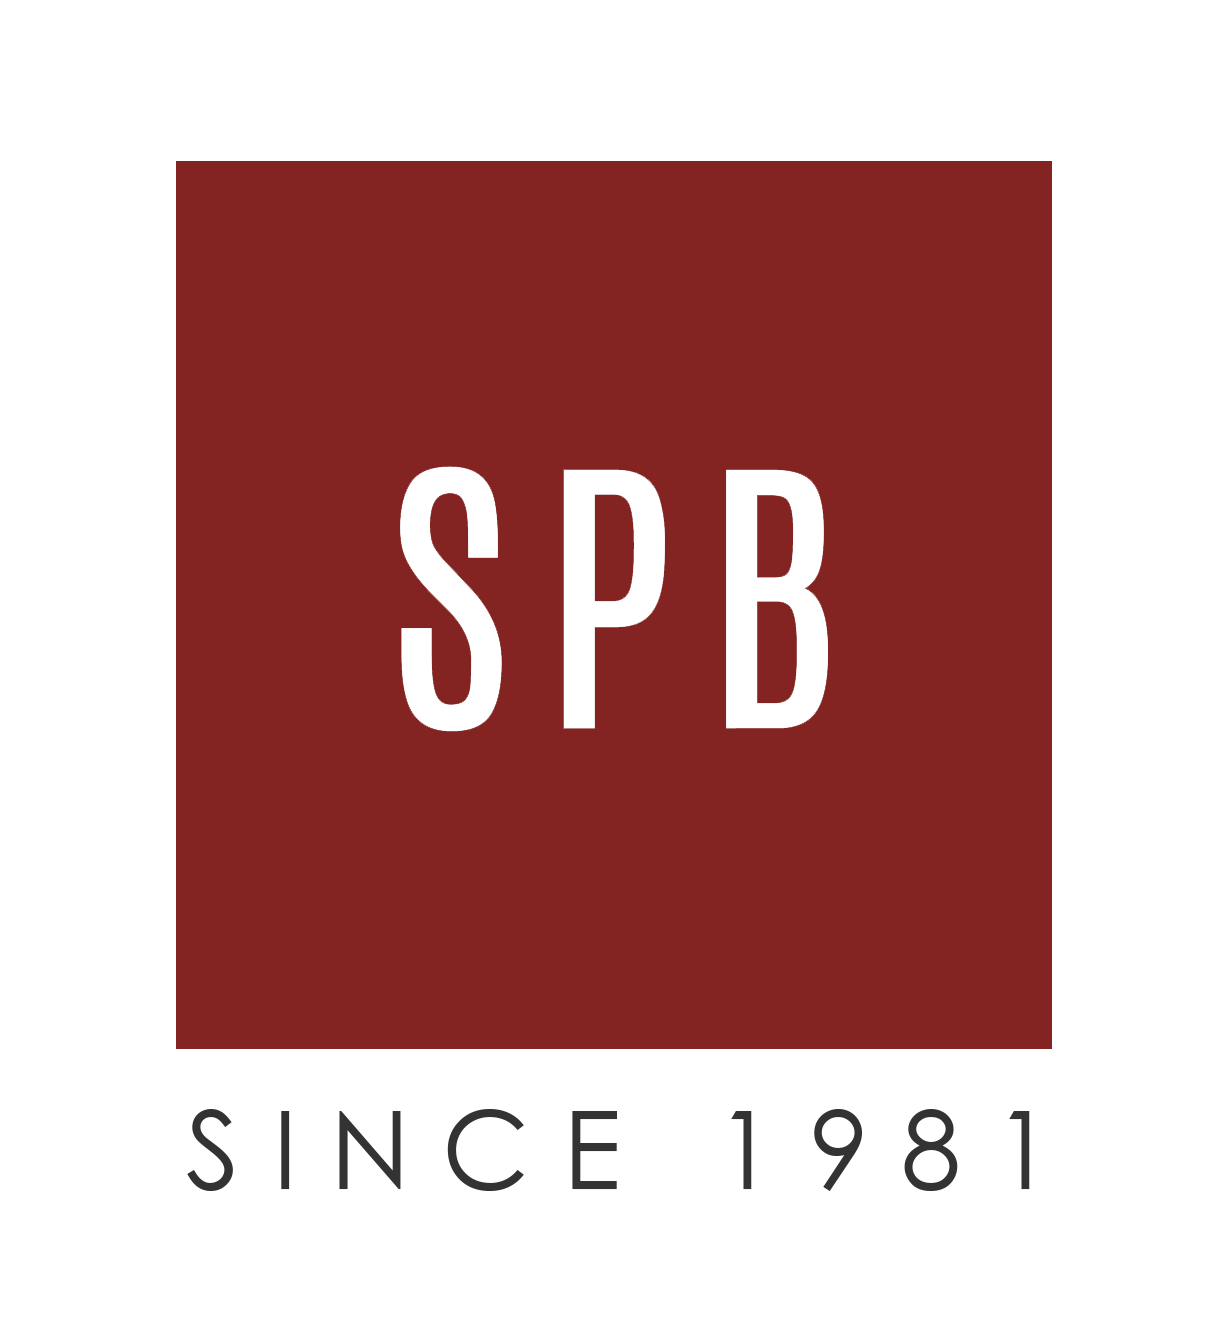 SPB logo - Transparent Background